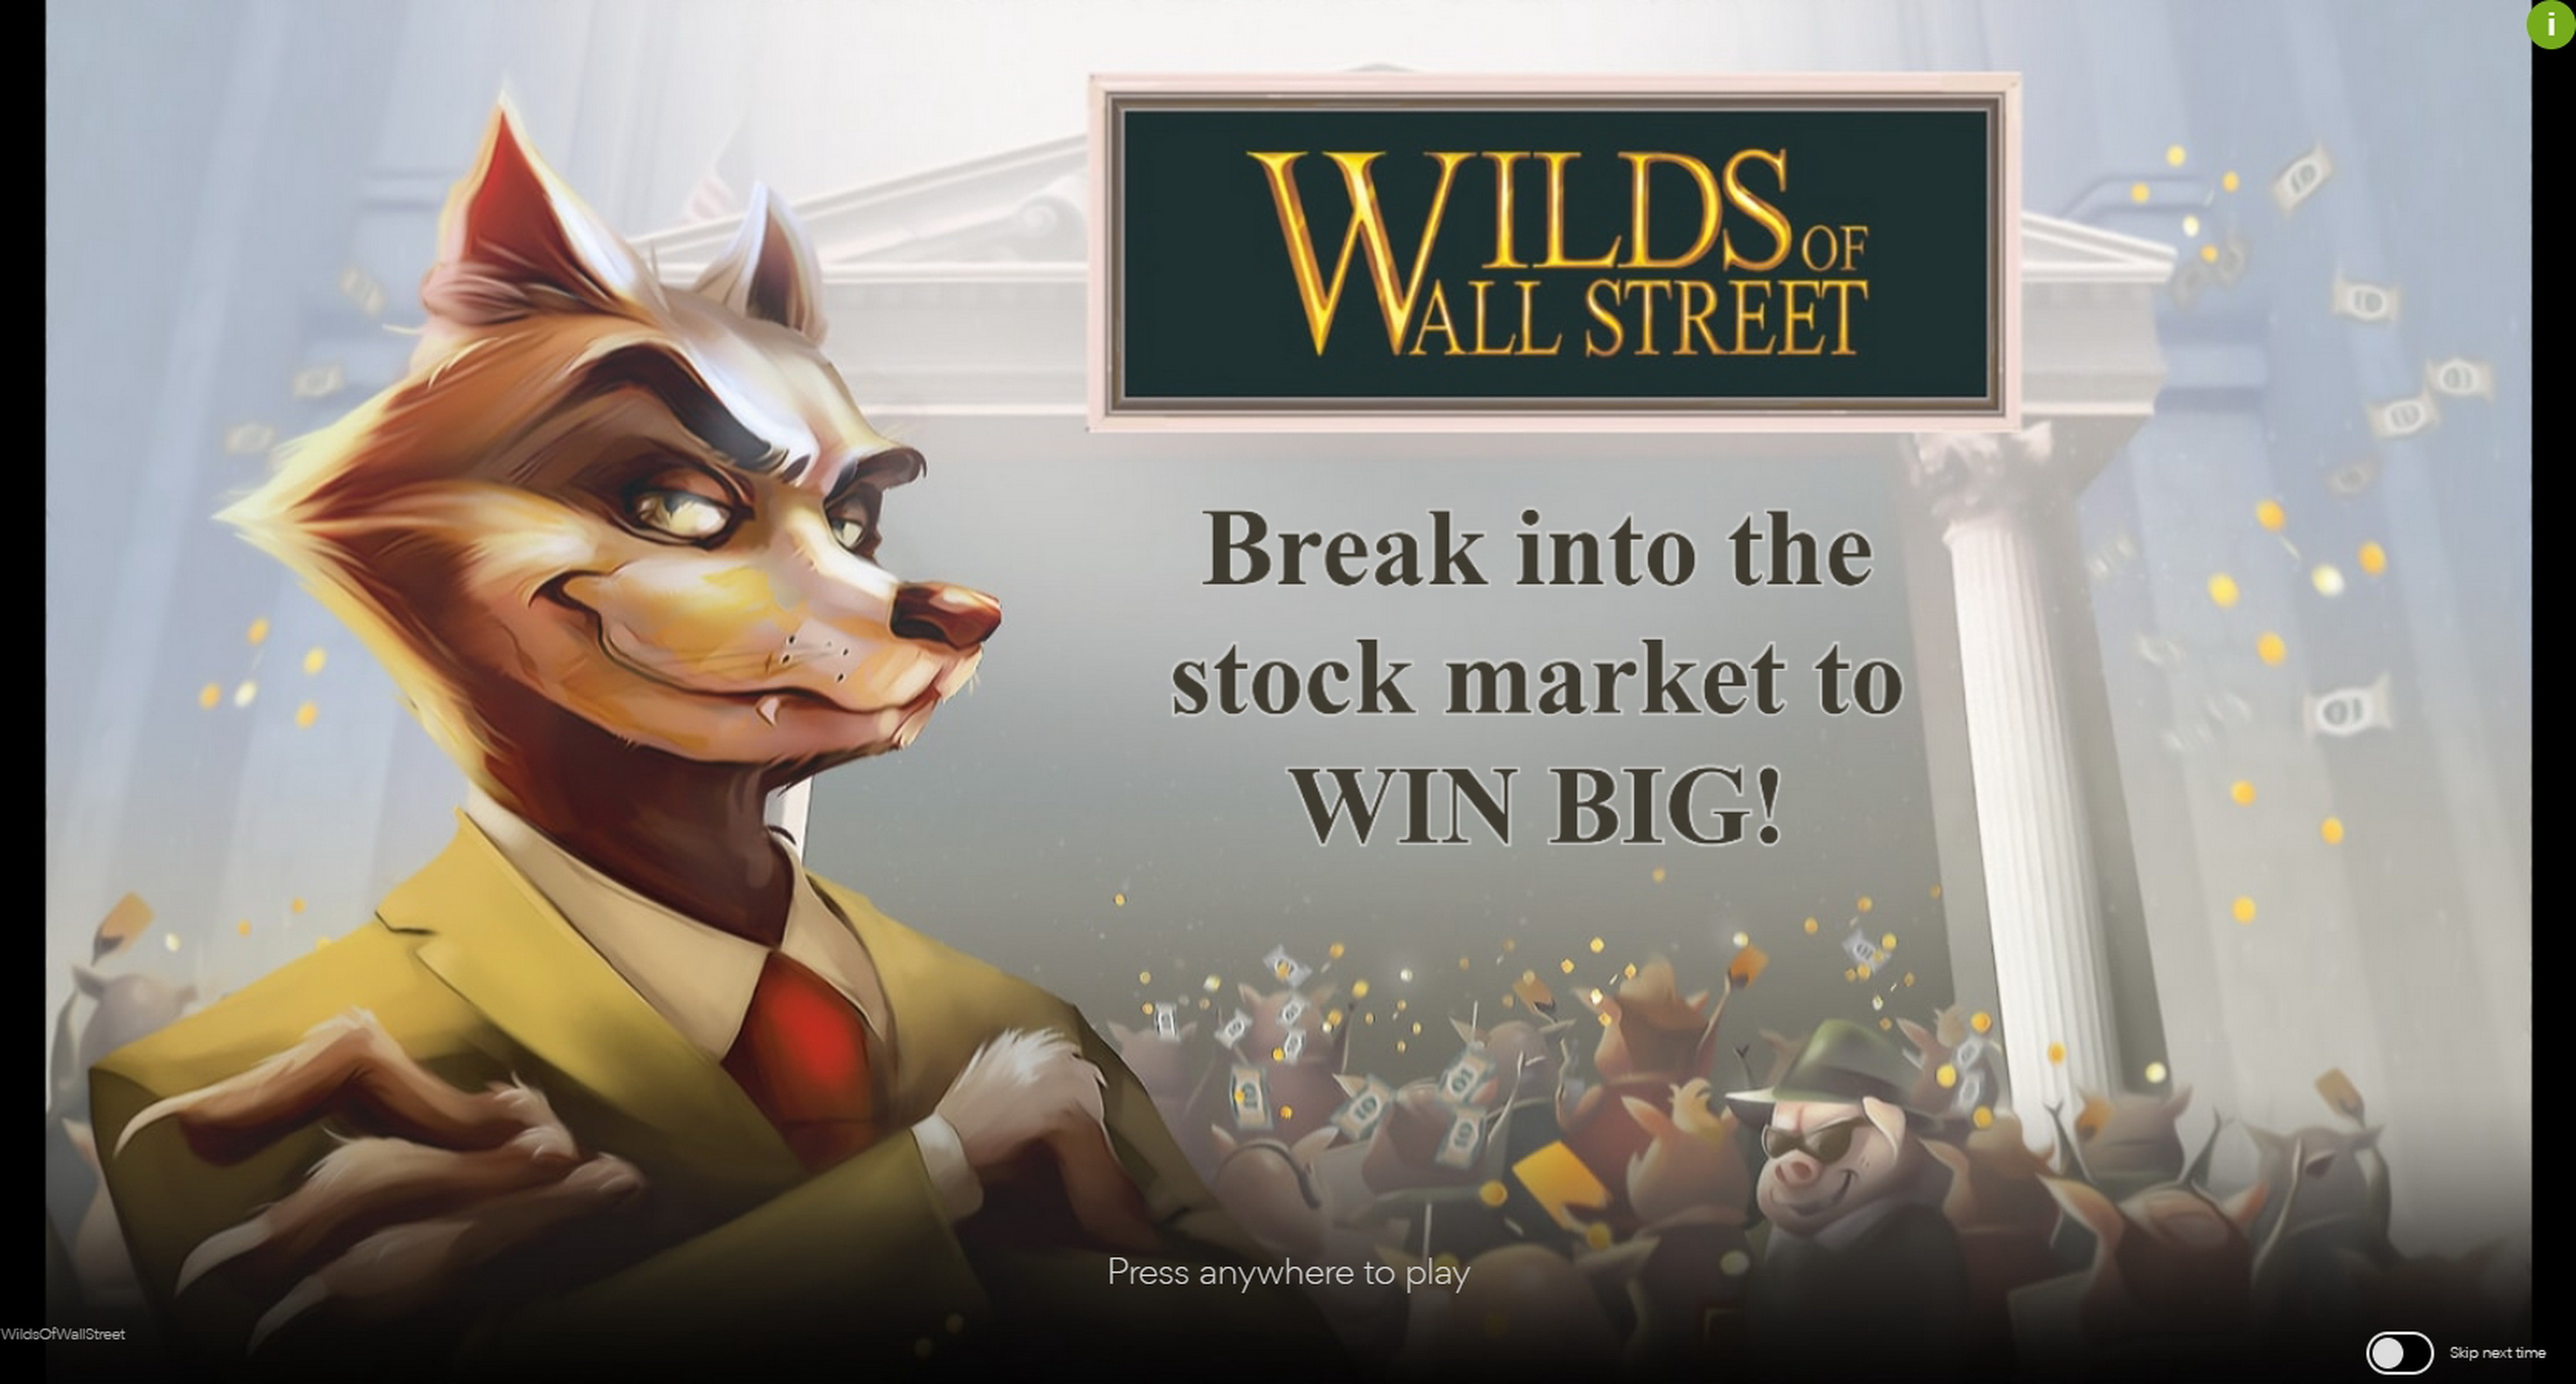 Play Wilds of Wall Street Free Casino Slot Game by Spearhead Studios